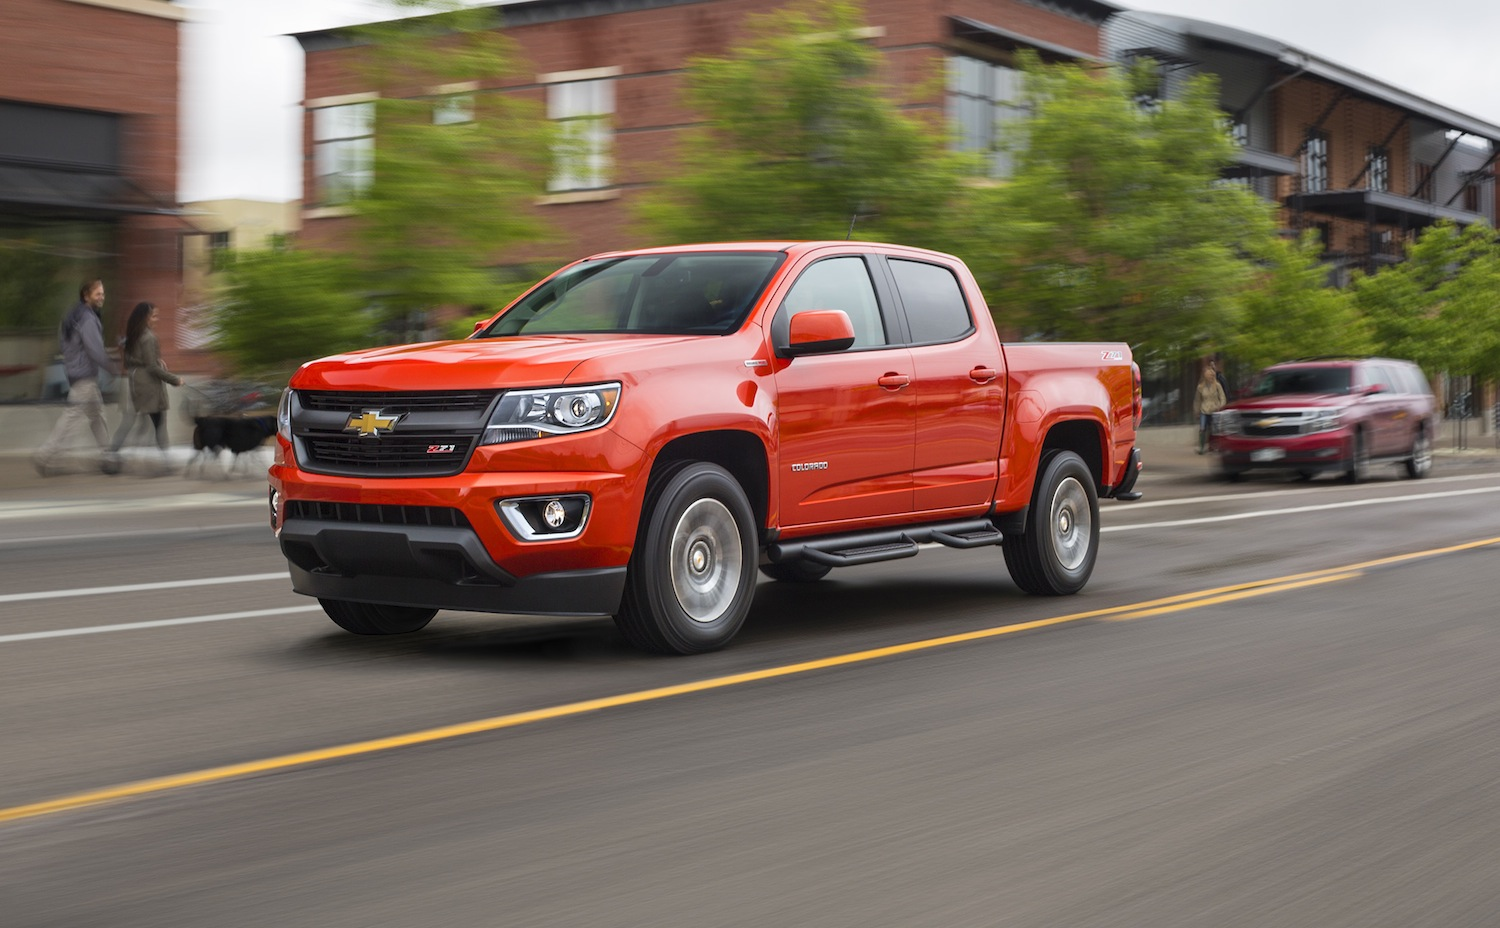 2016 chevrolet colorado duramax diesel revealed chevytv. Cars Review. Best American Auto & Cars Review